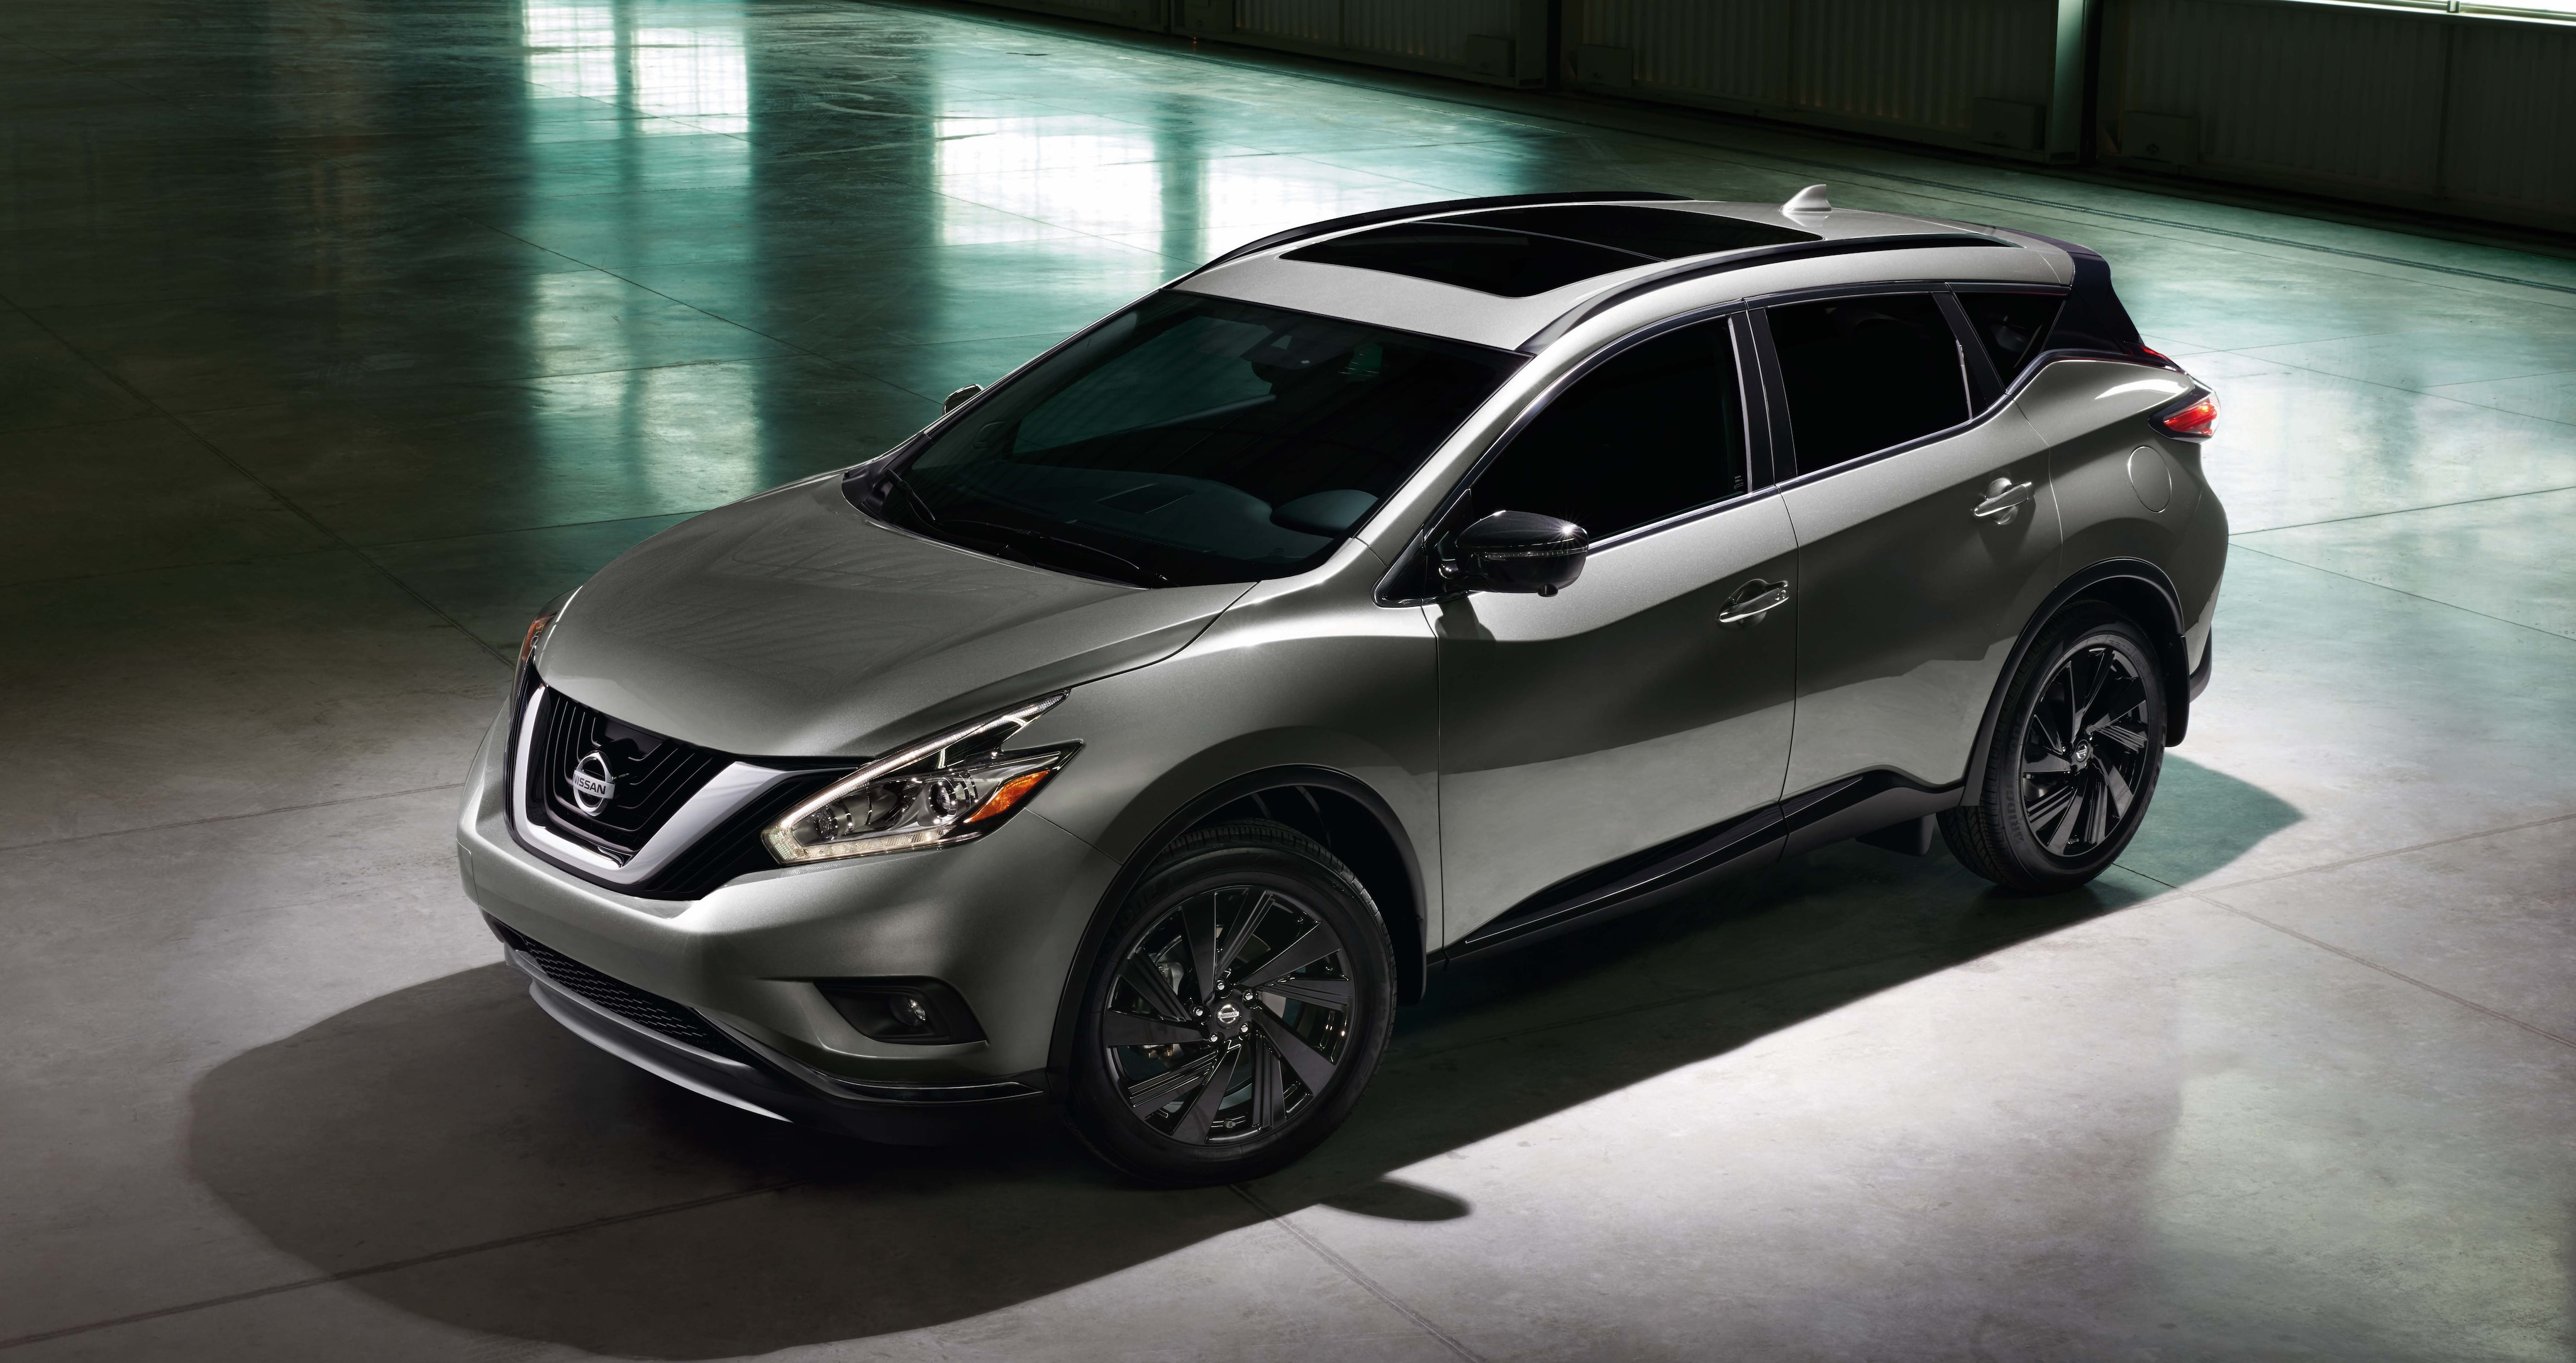 New Nissan Murano in Lowell MA AutoFair Nissan of Chelmsford